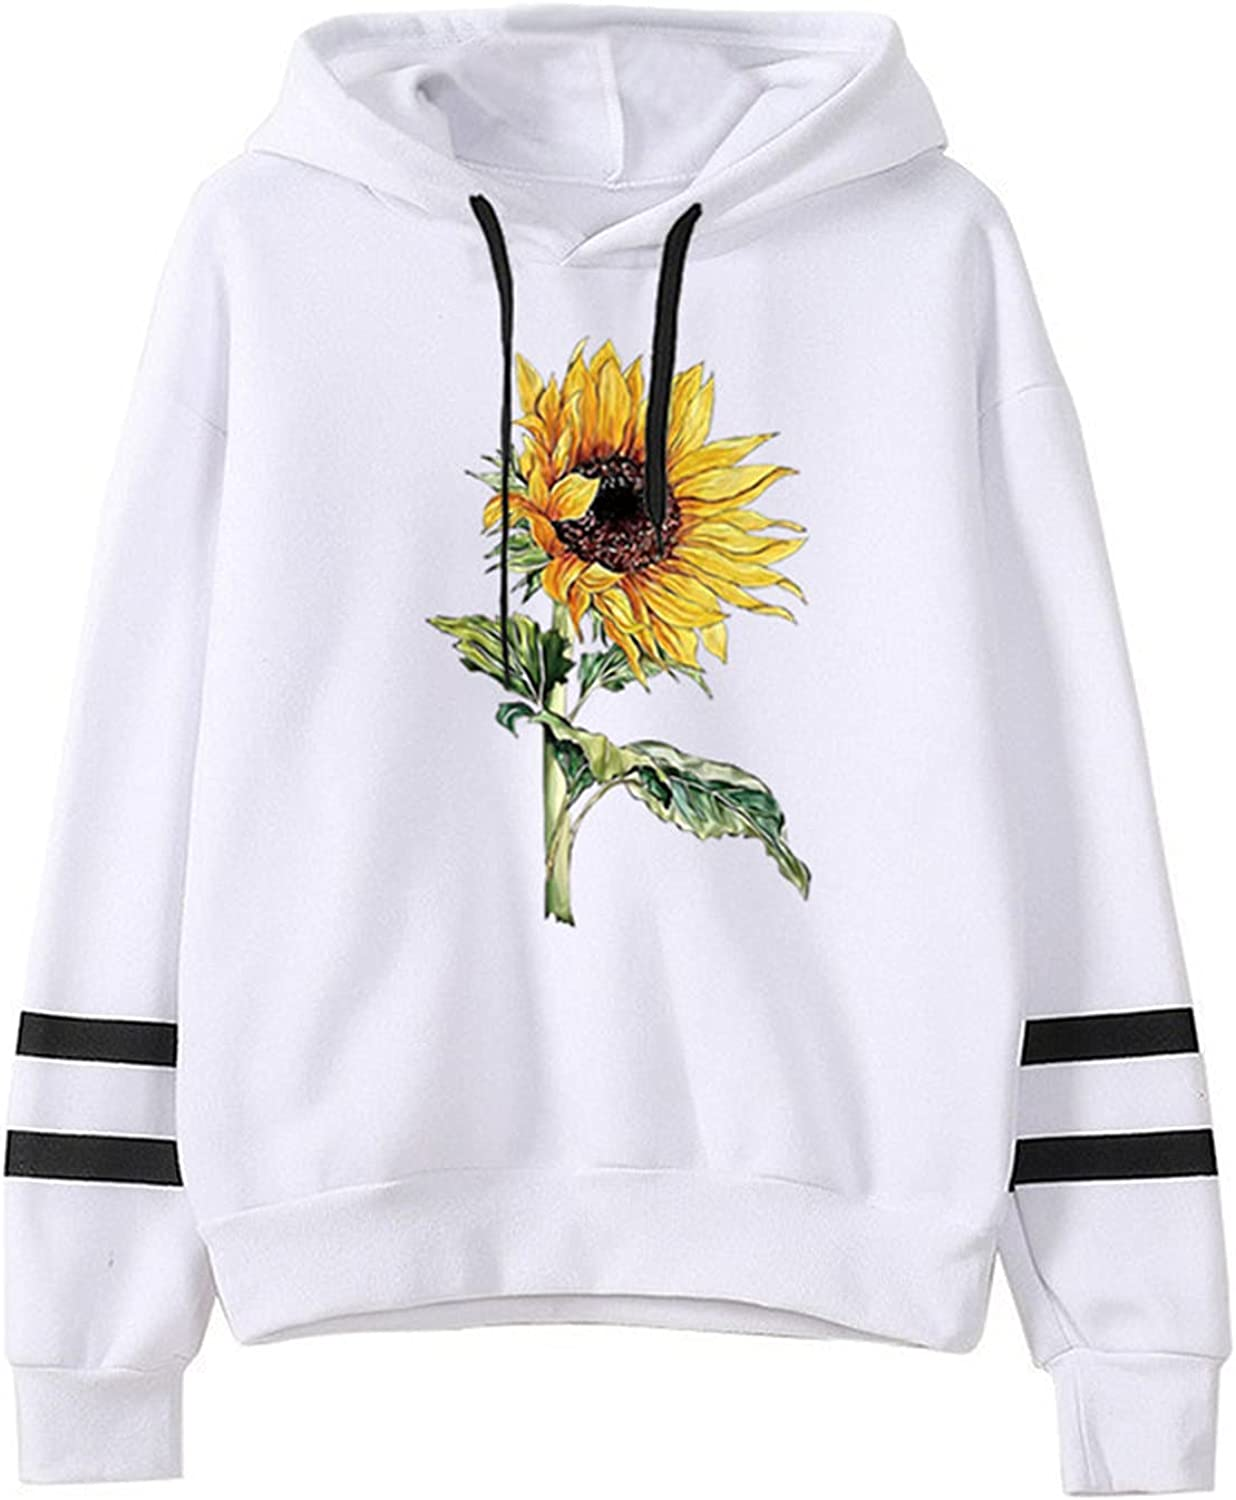 Sunflower Graphic Year-end annual account Hoodie for Shipping included Womens Blouse Long T Striped Sleeve